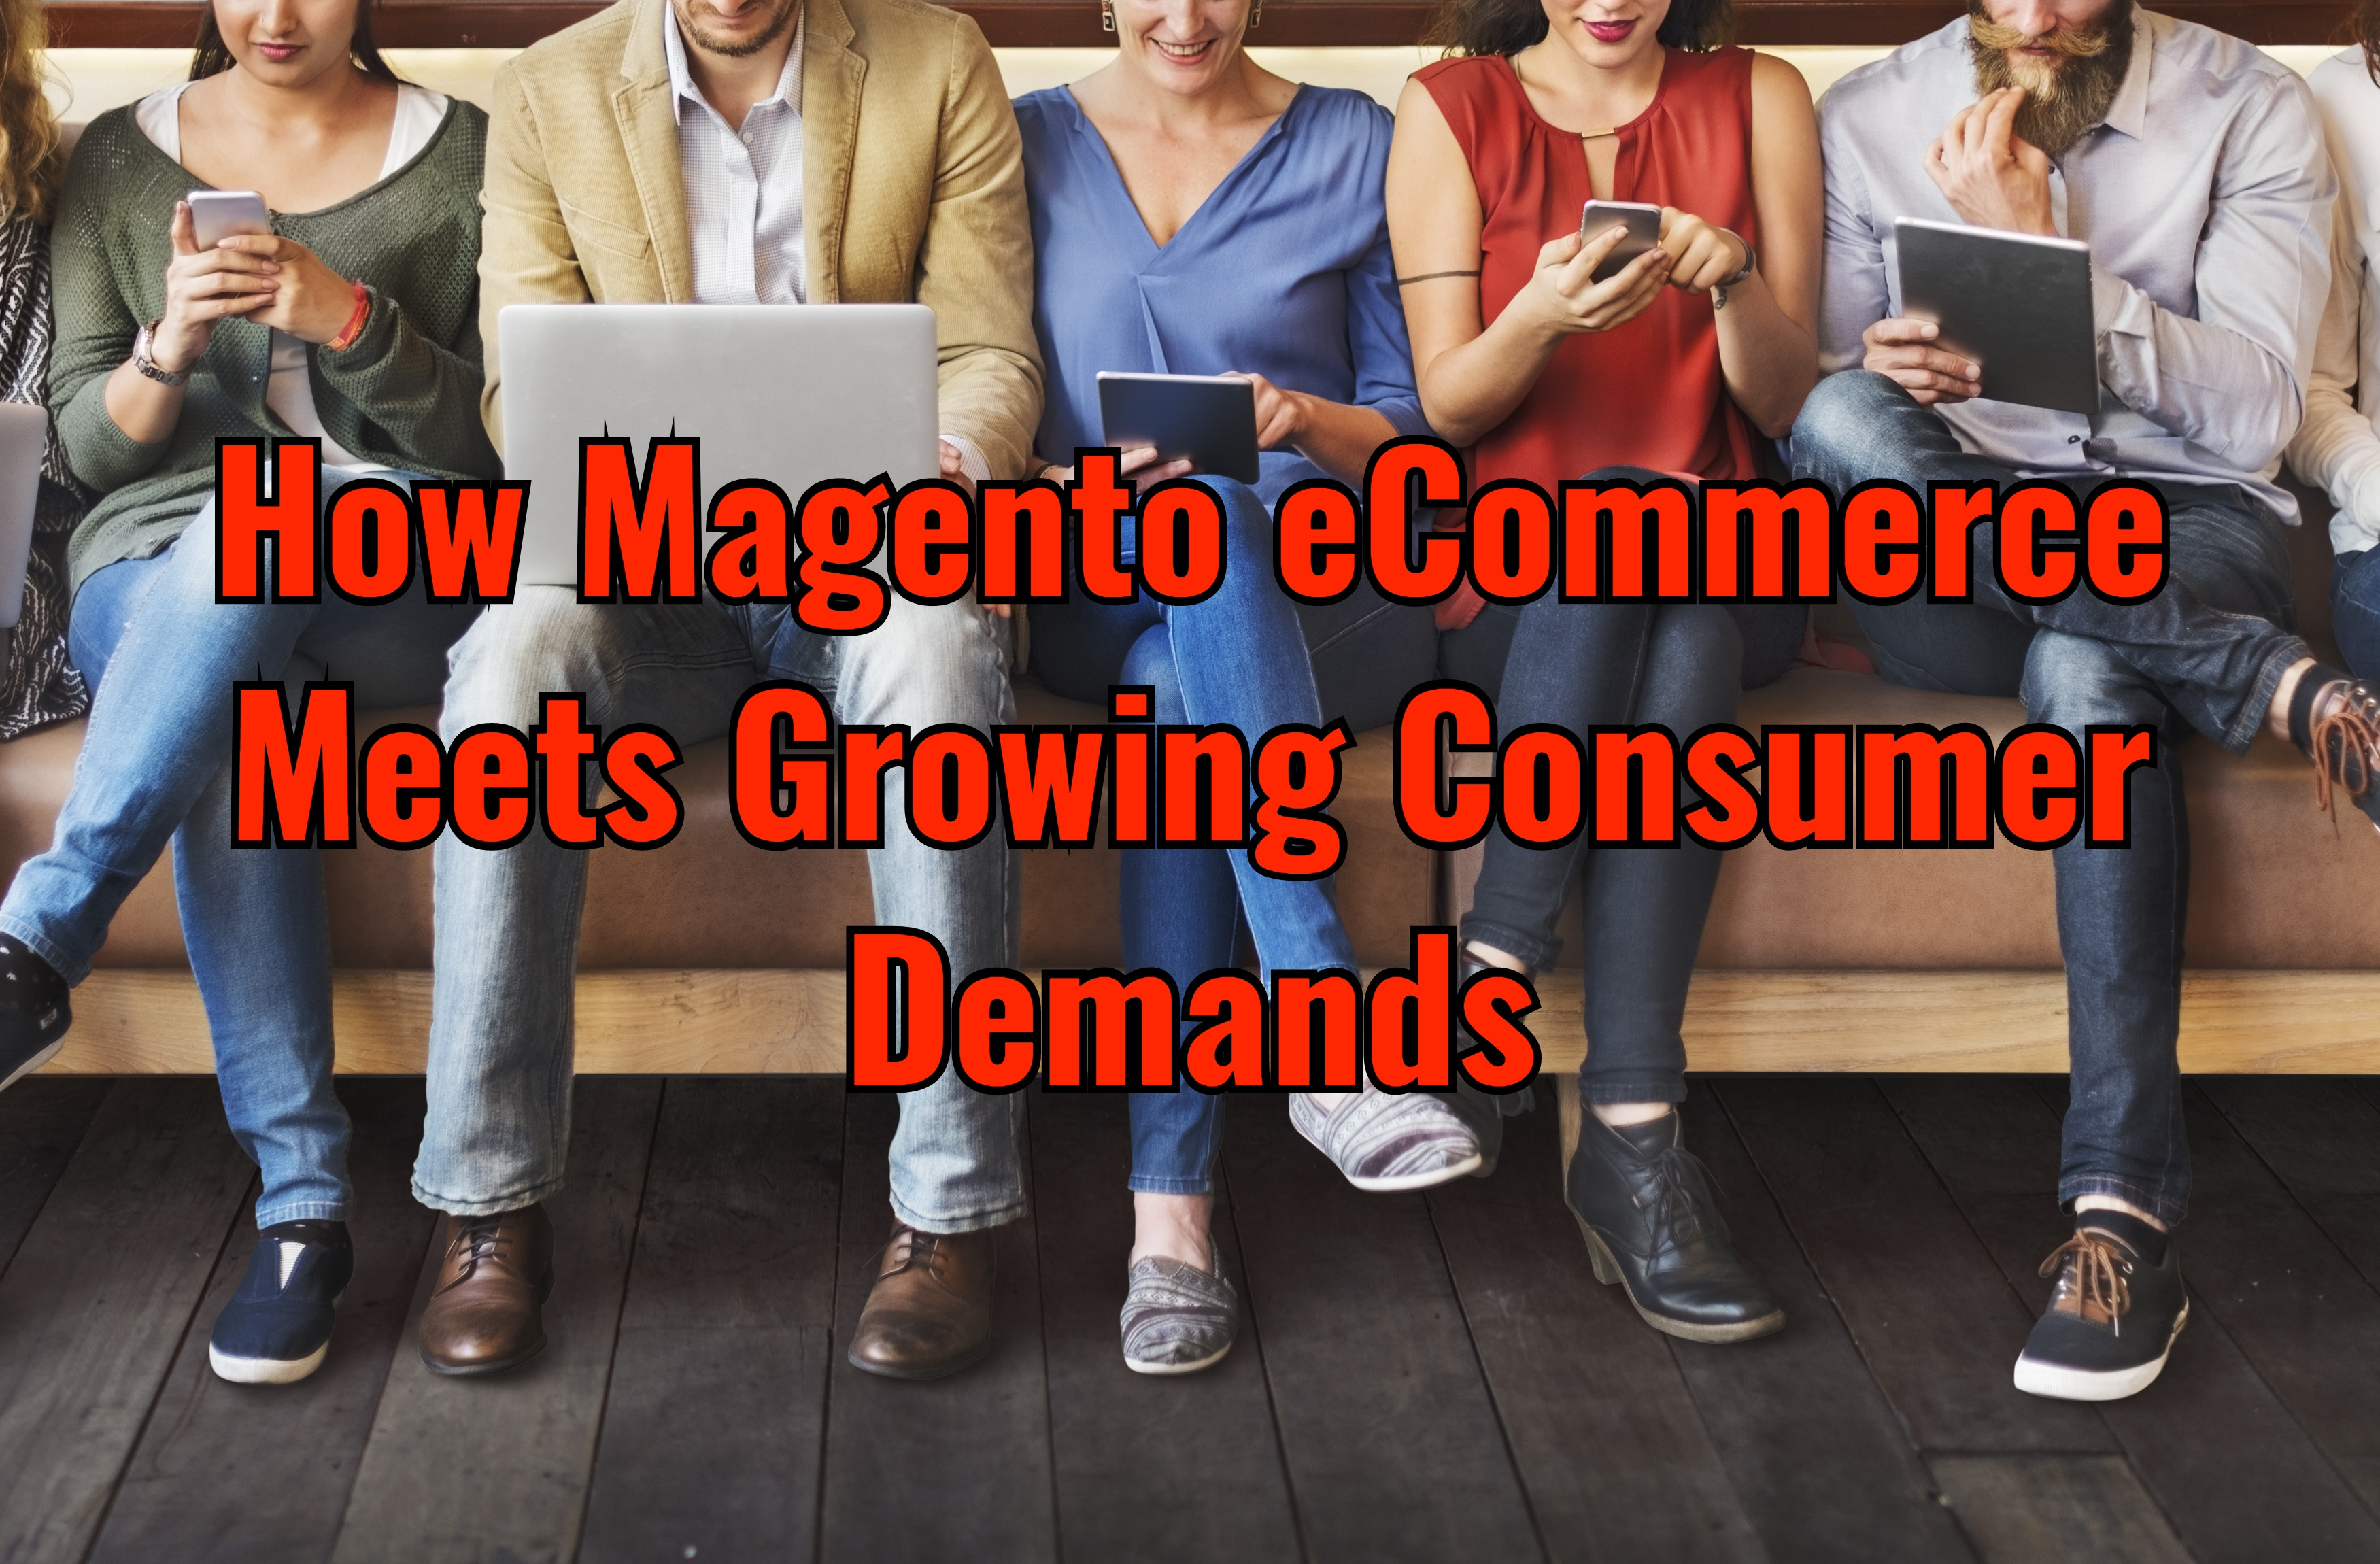 How Magento eCommerce Meets Growing Consumer Demands